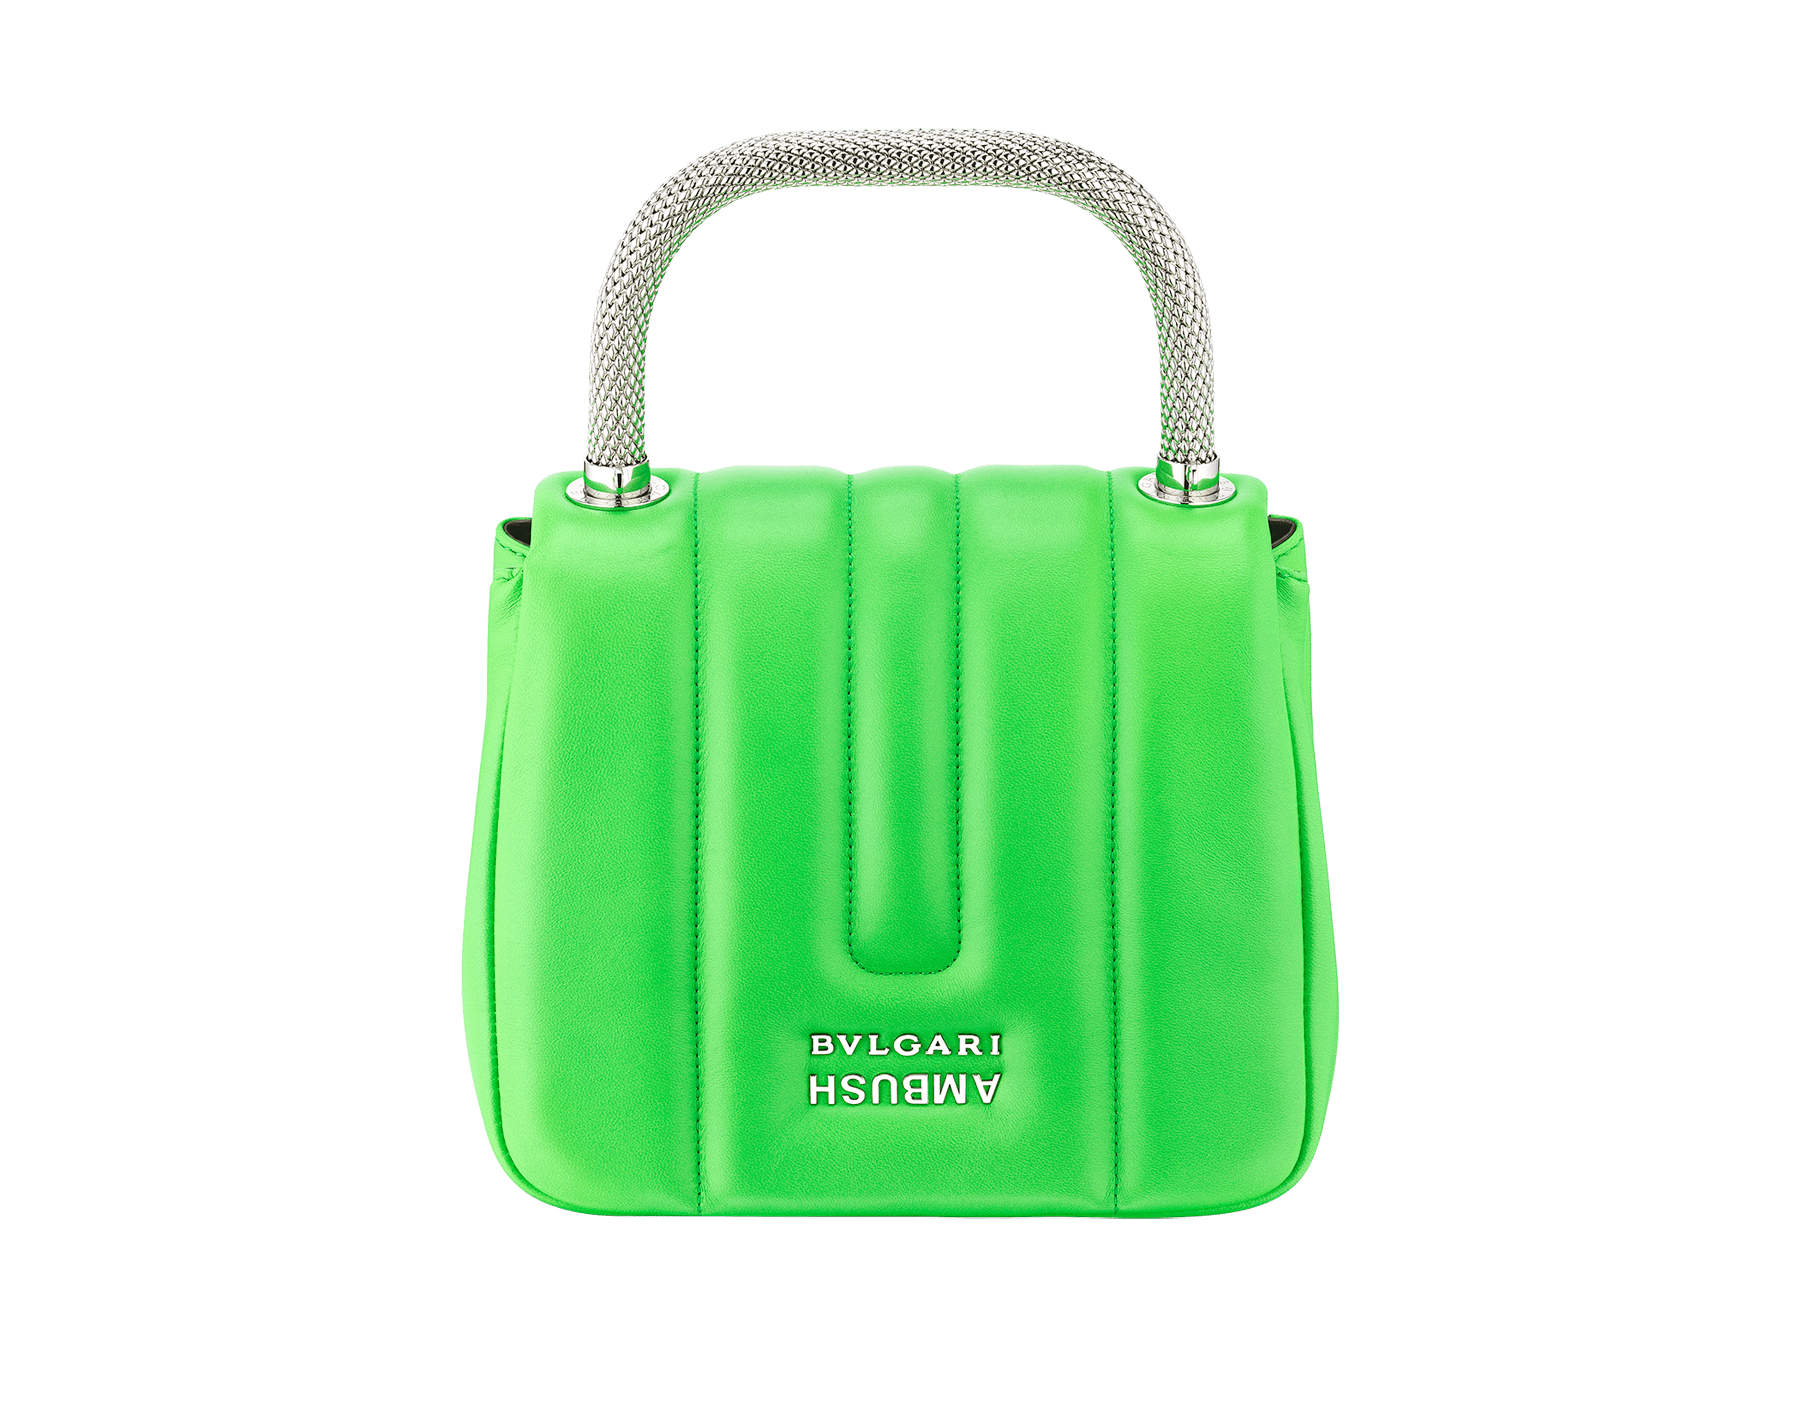 """Ambush x Bvlgari"" top handle bag in bright green nappa leather. New Serpenti head closure in palladium plated brass dressed with bright green nappa leather, finished with seductive black onyx eyes. Limited edition. 290346 image 3"